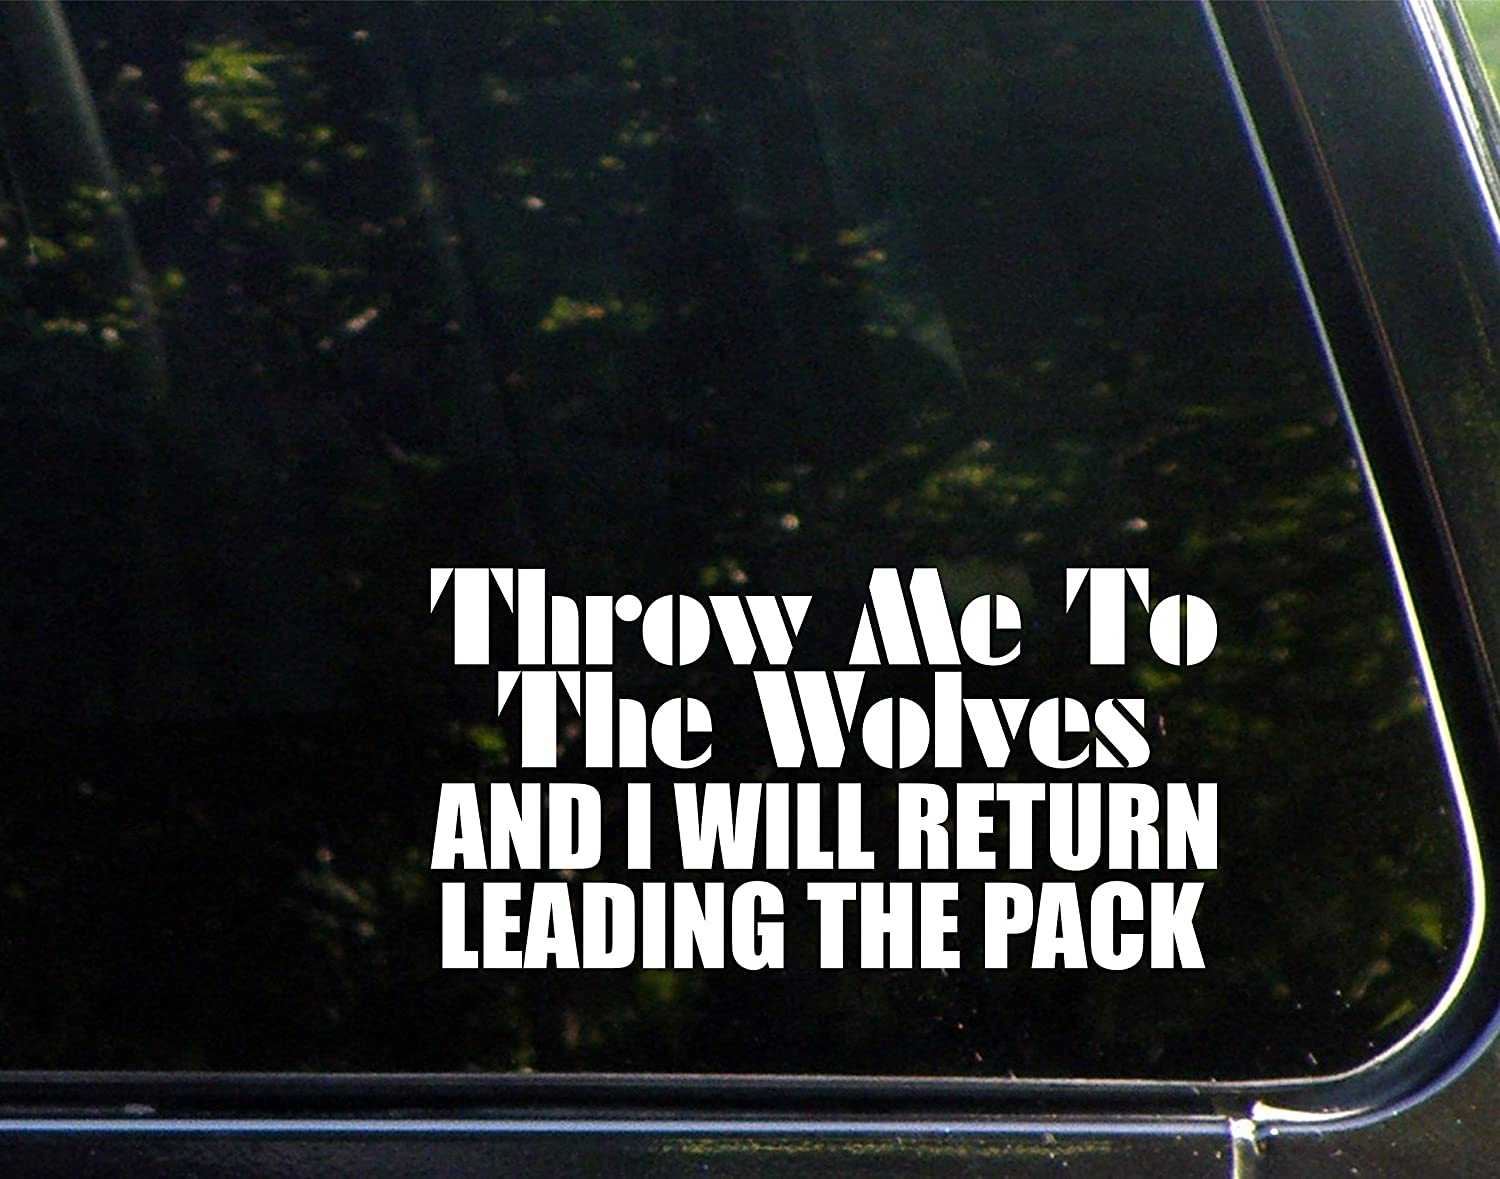 "Diamond Graphics Throw Me to The Wolves and I Will Return Leading The Pack (7-1/4"" X 3-3/4"") Die Cut Decal Bumper Sticker for Windows, Cars, Trucks, Laptops, Etc."